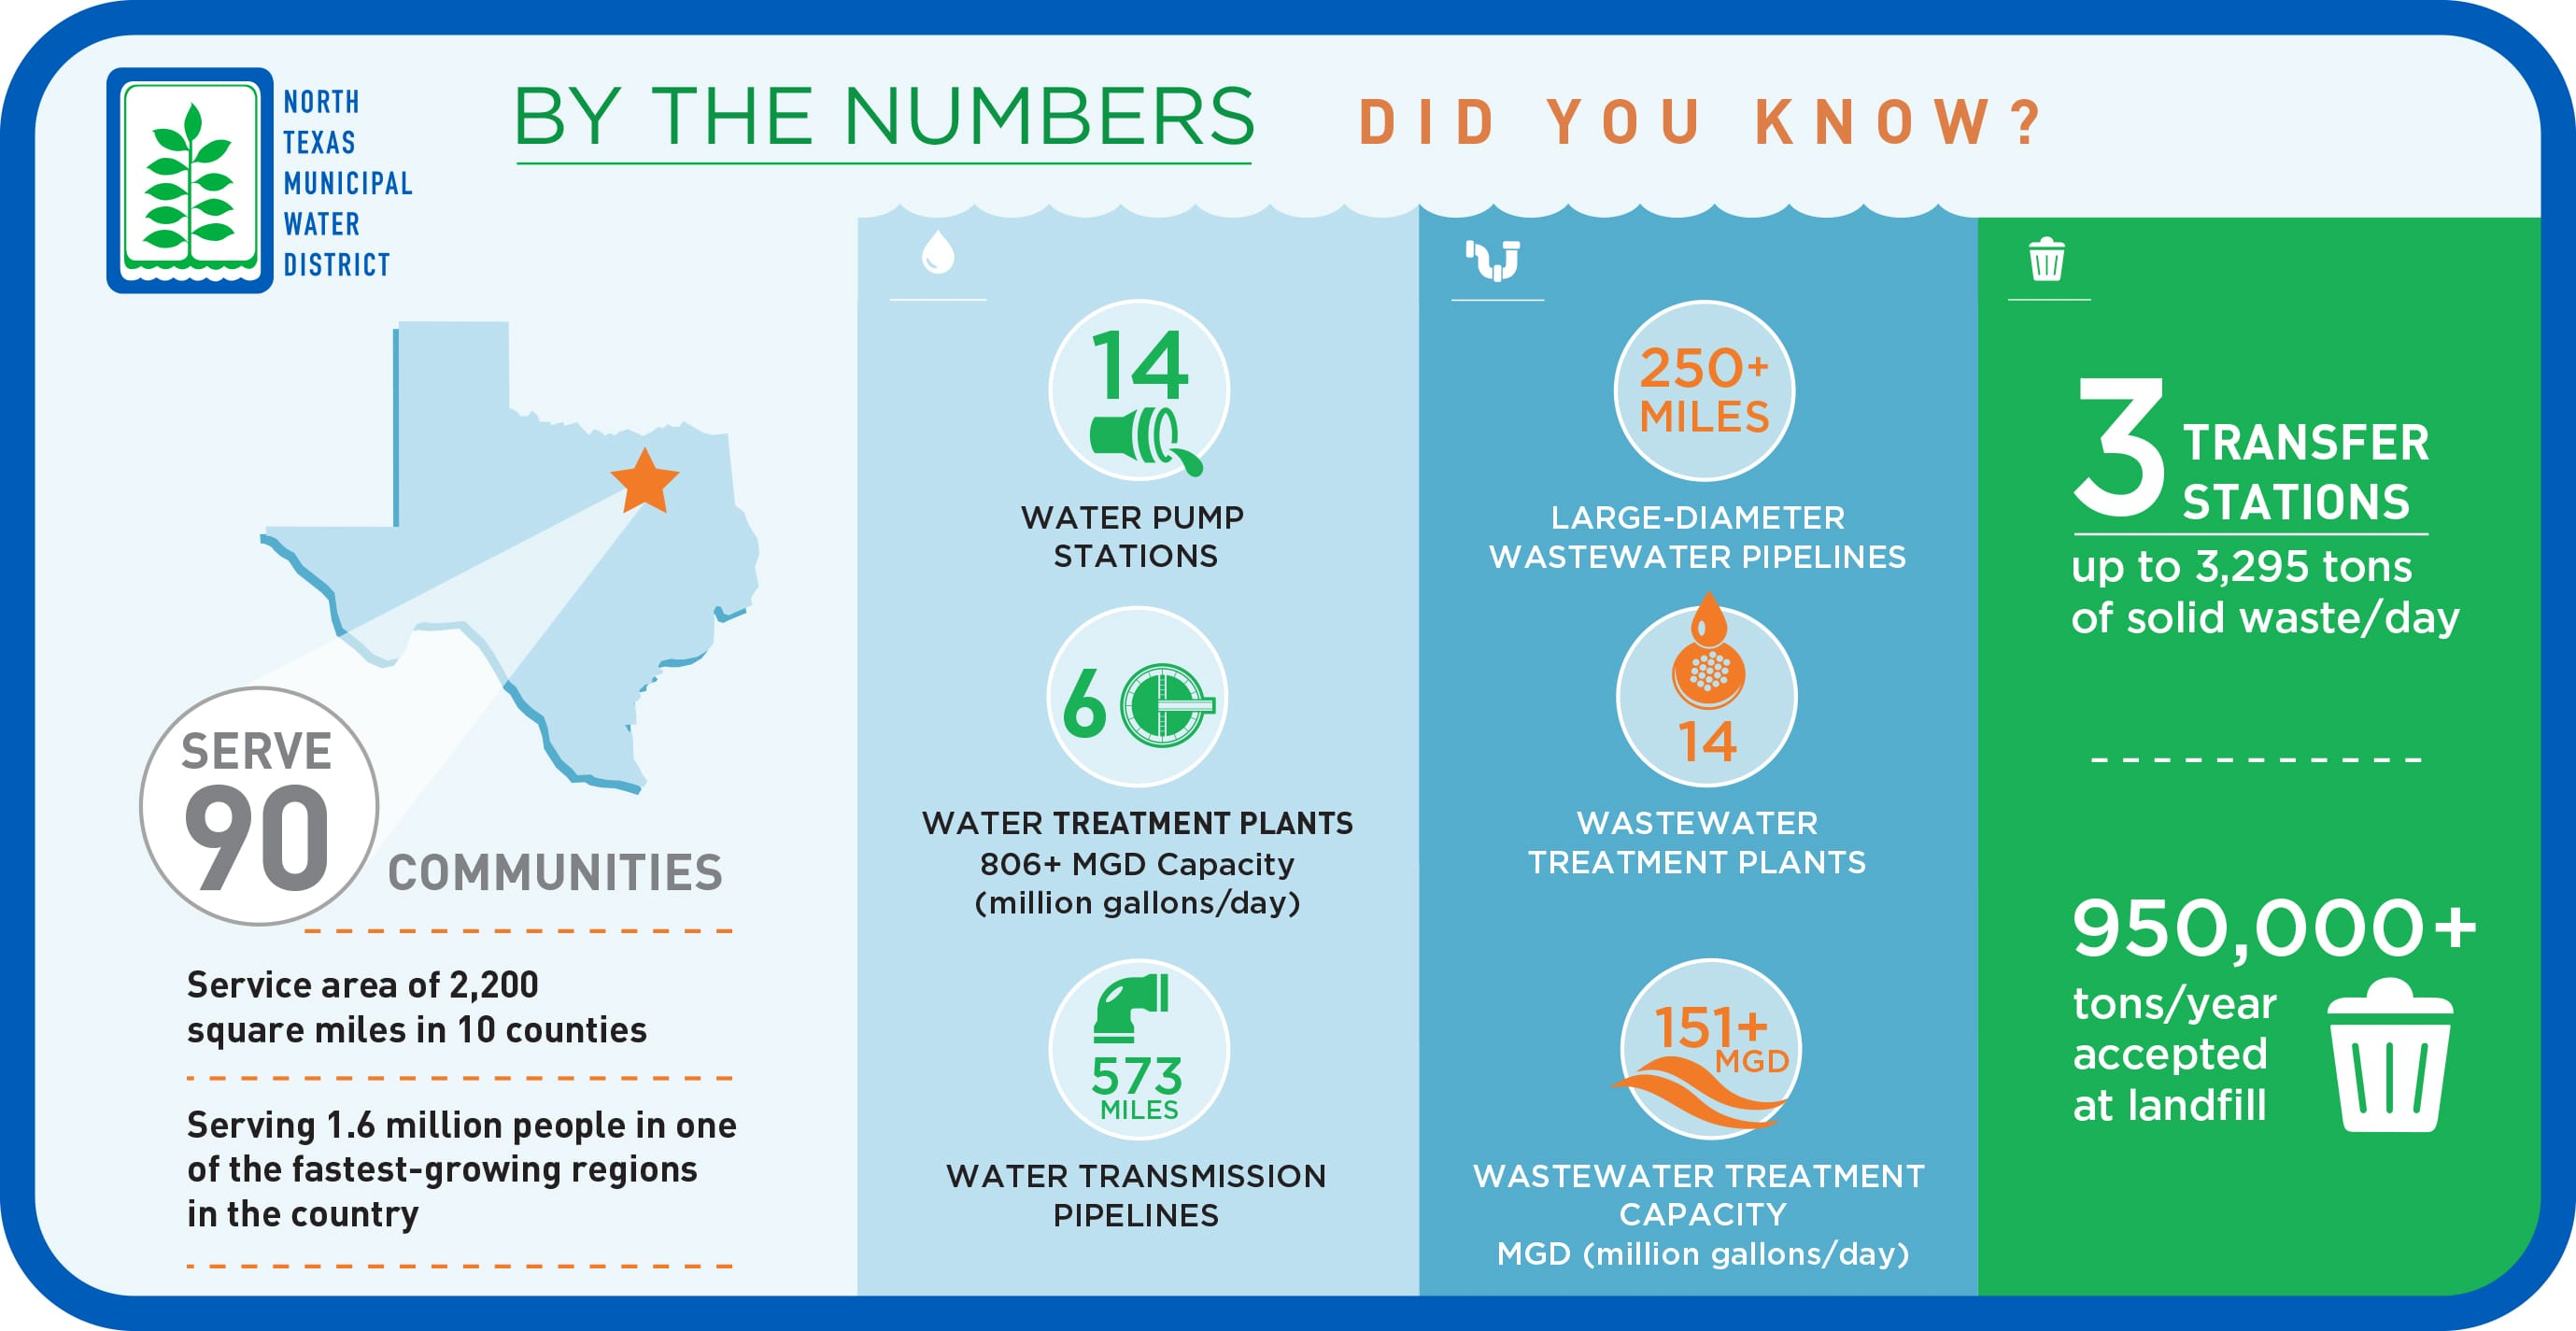 by the numbers infographic - horizontal